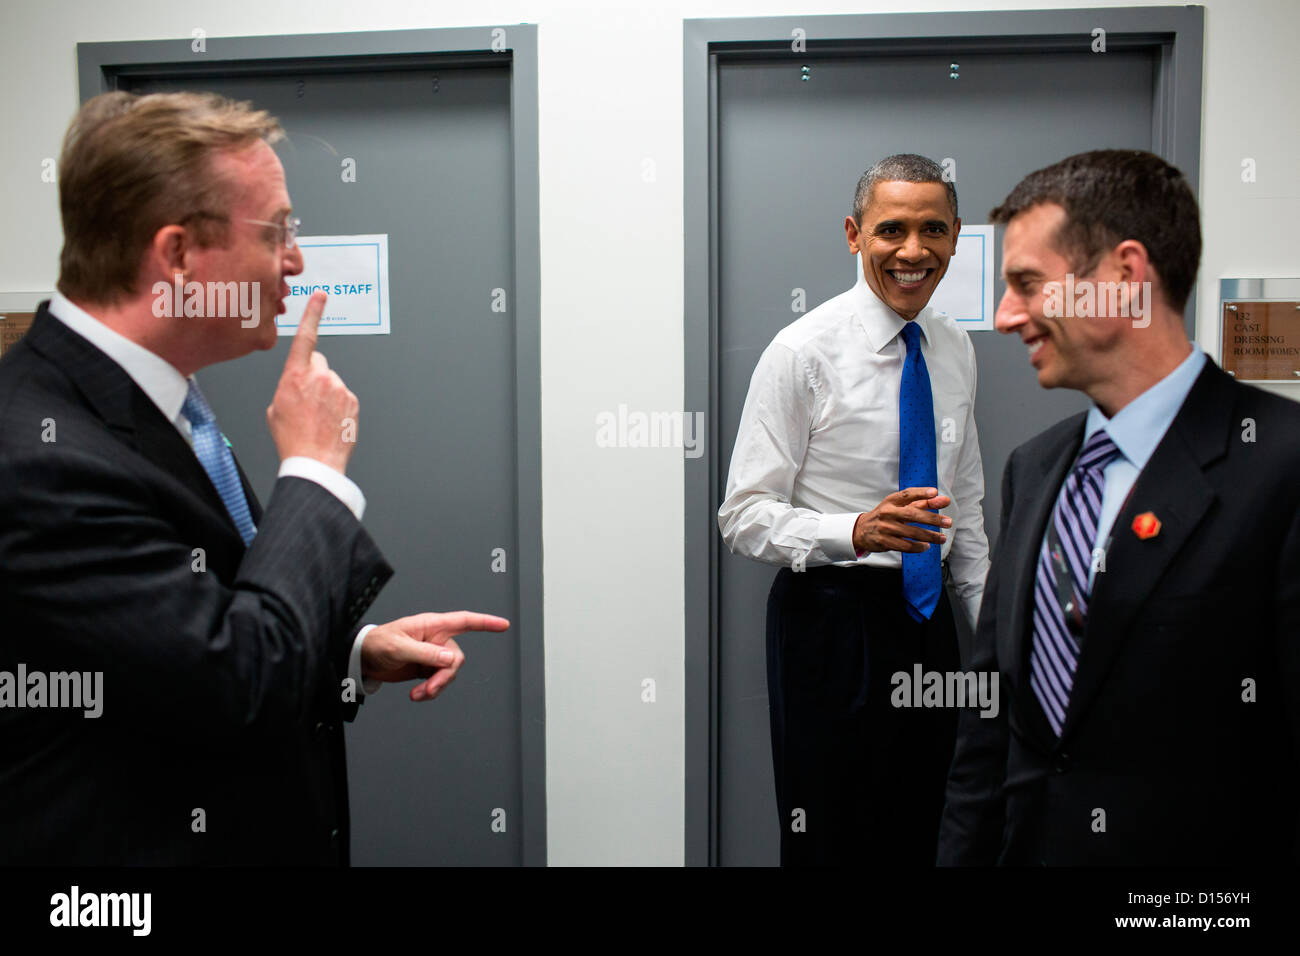 US President Barack Obama jokes with Robert Gibbs and David Plouffe backstage prior to the start of the third presidential - Stock Image